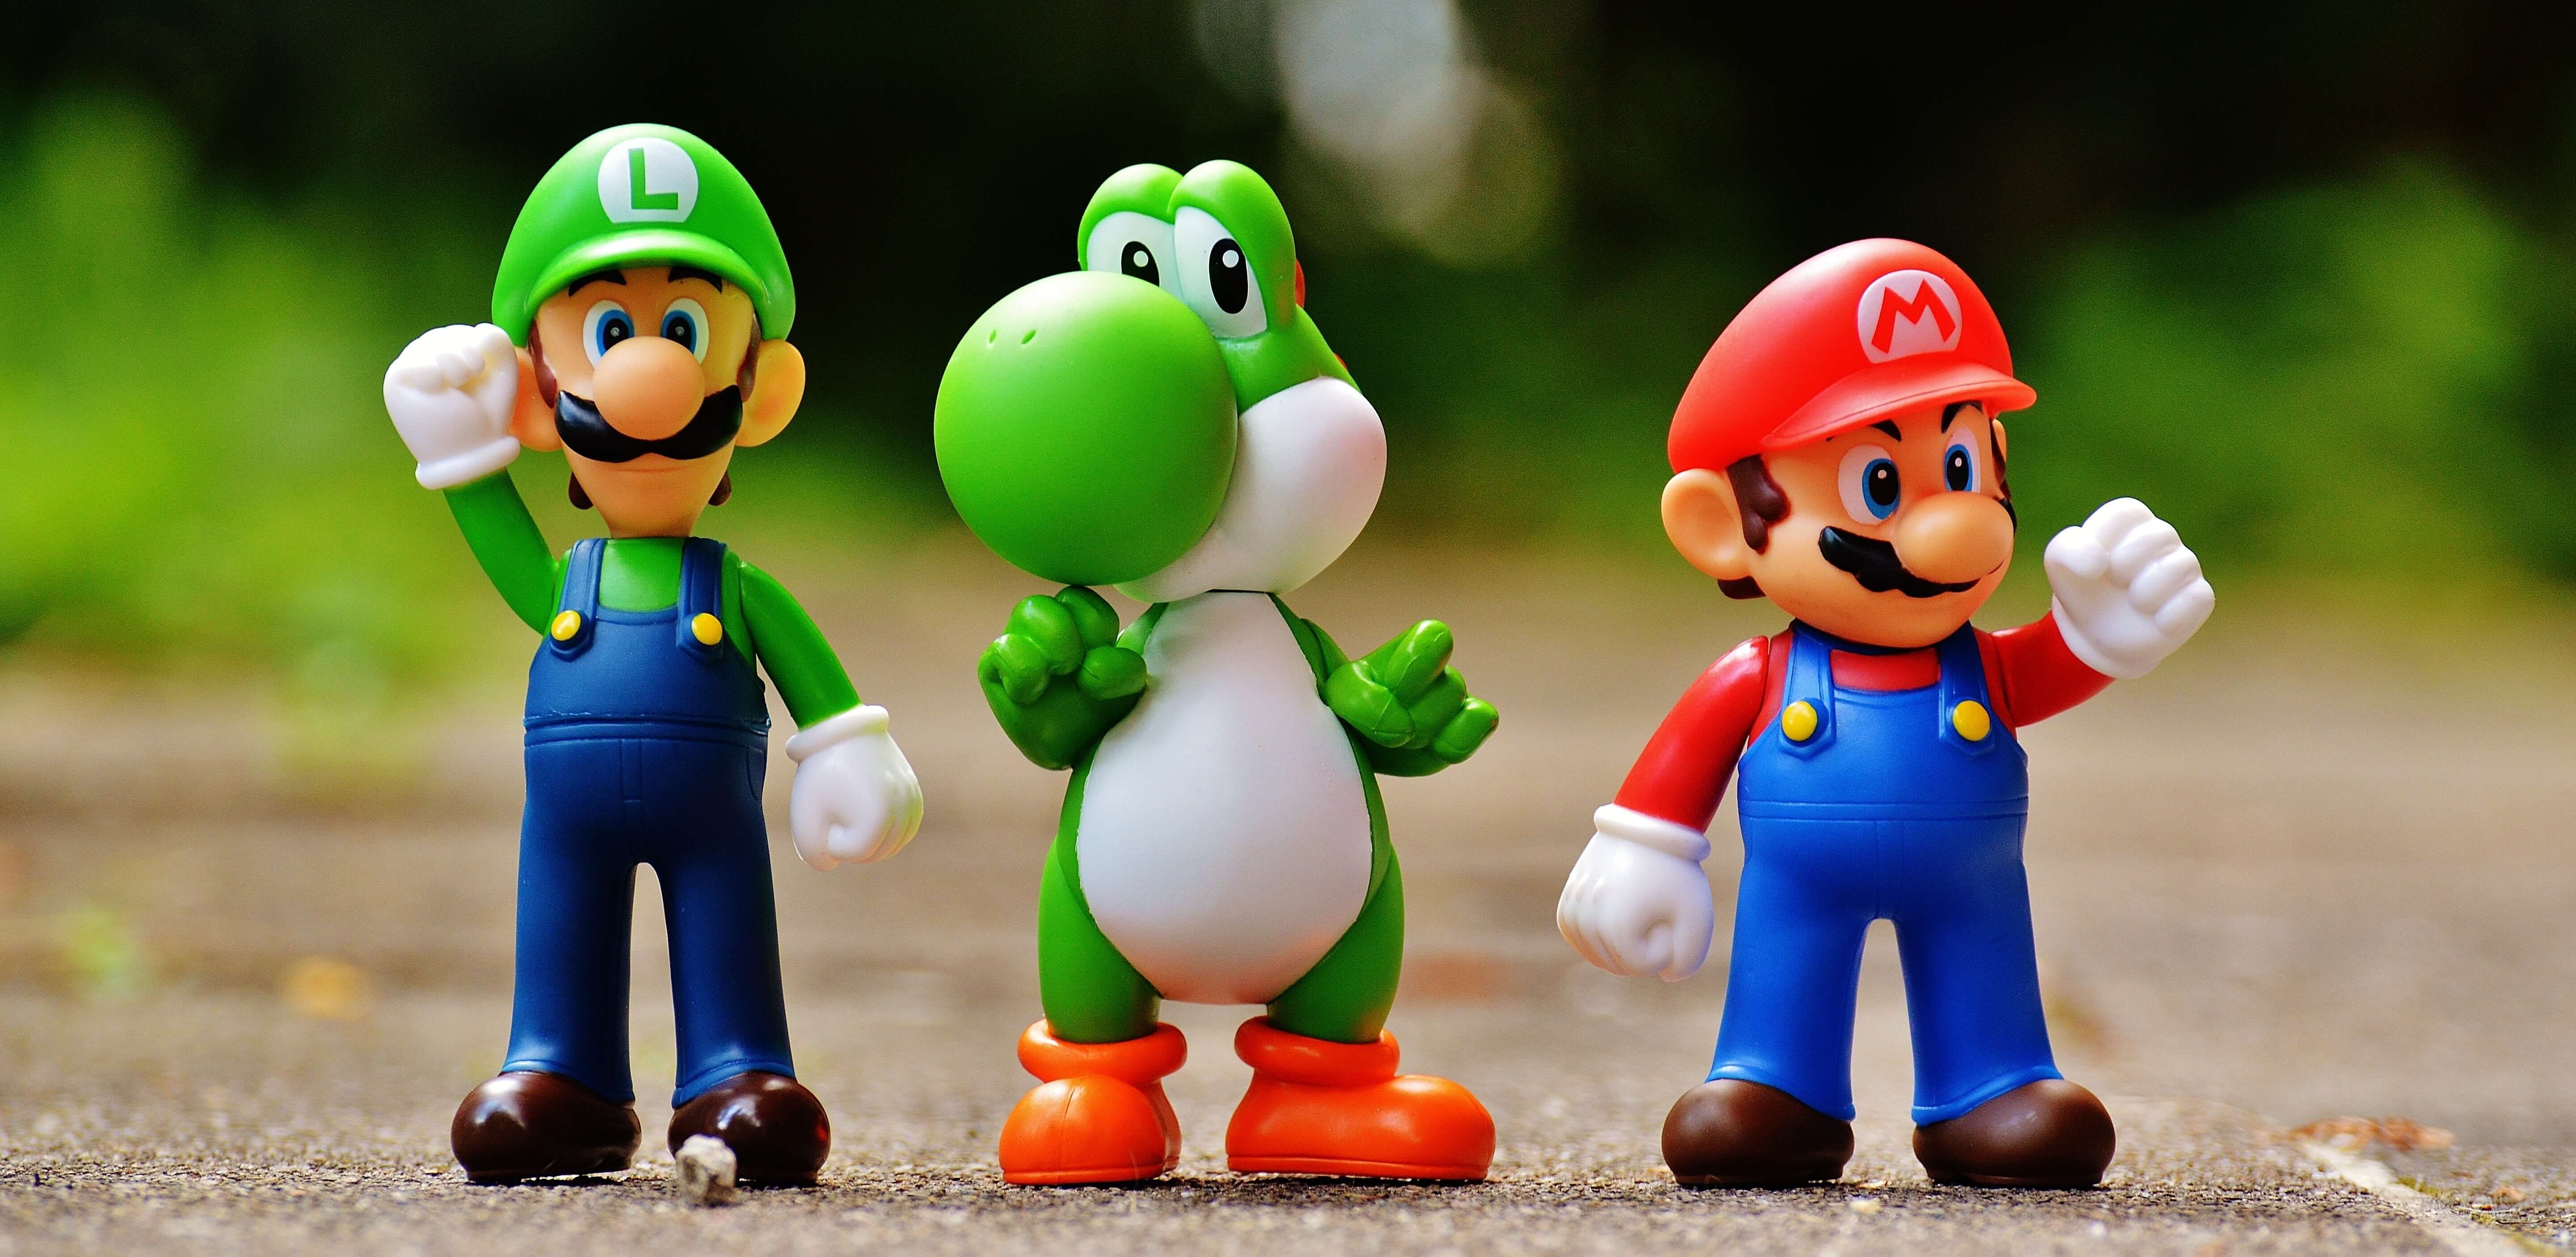 Mario, Luigi and Yoshi – protagonists from the Nintendo classic: Super Mario